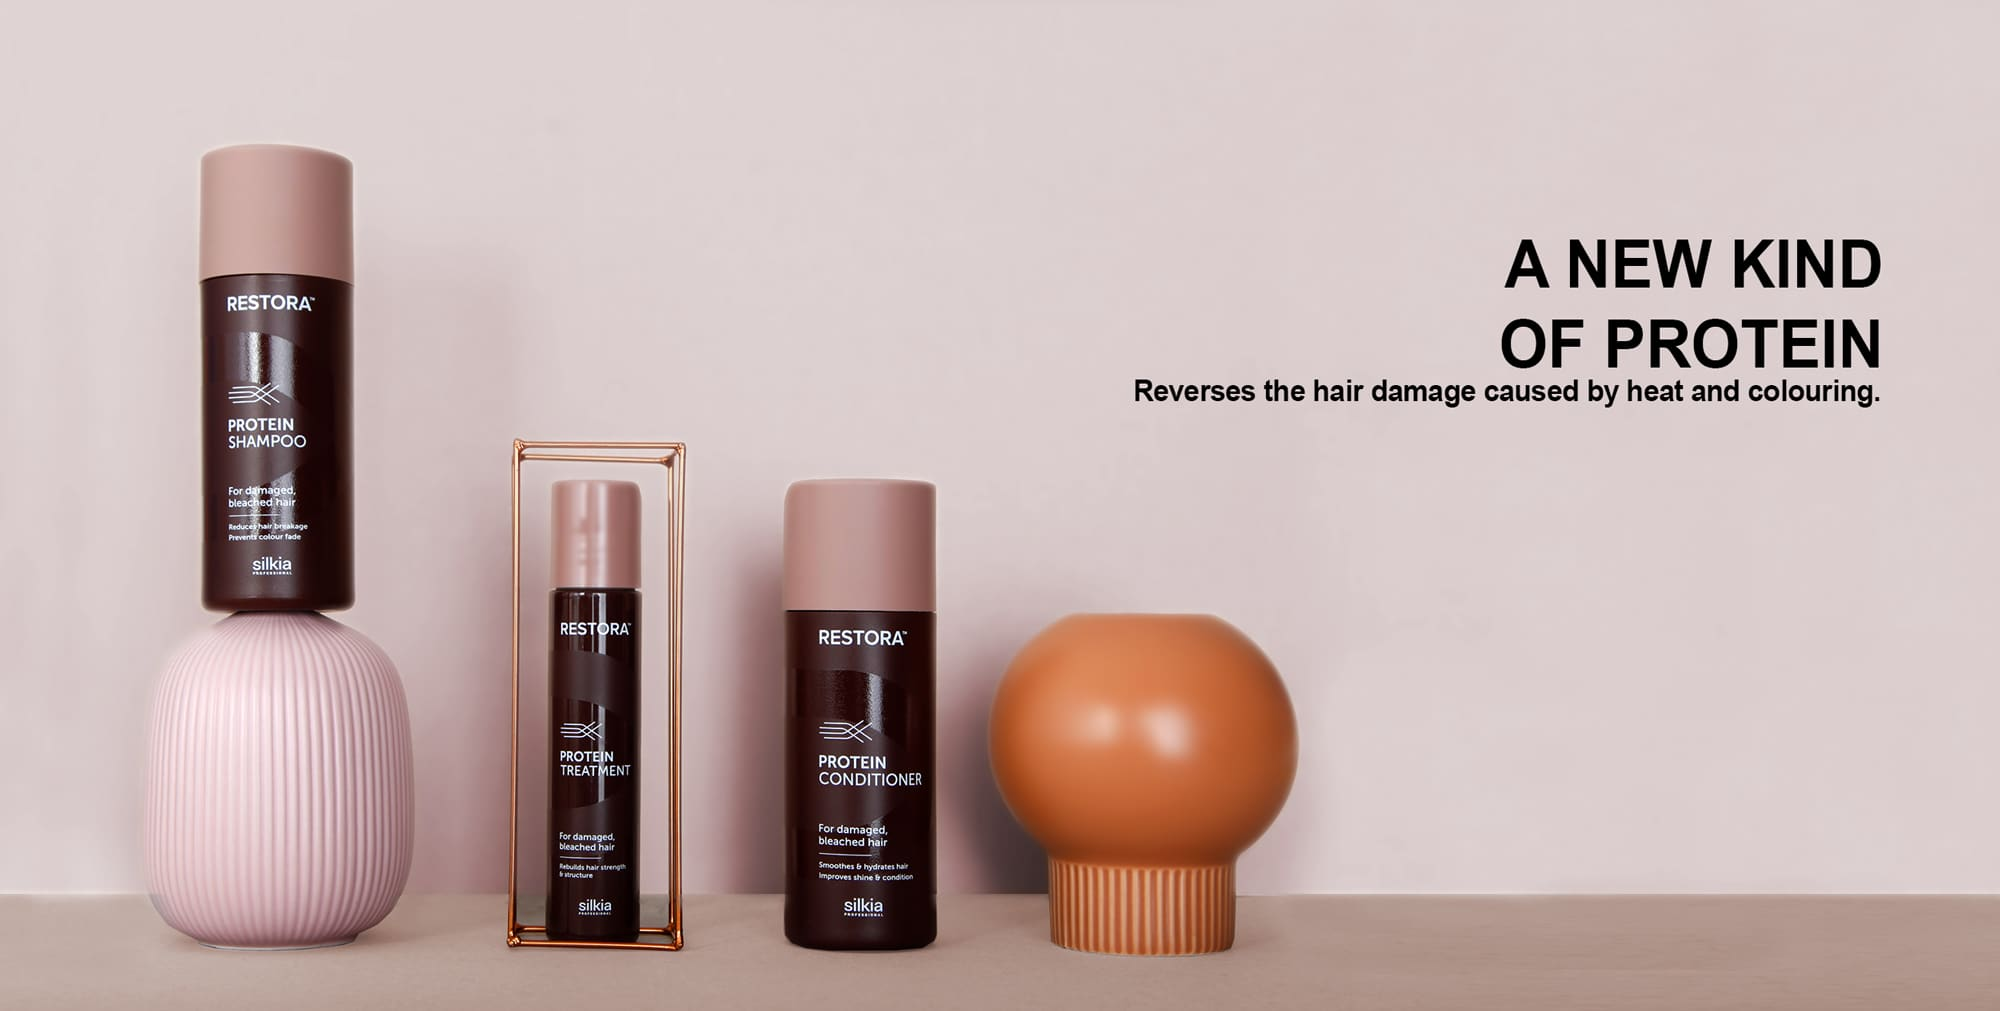 Restora Protein Shampoo, Restora Protein Treatment and Restora Protein Conditioner are shown with props. They reverse the hair damage caused by heat and colouring.